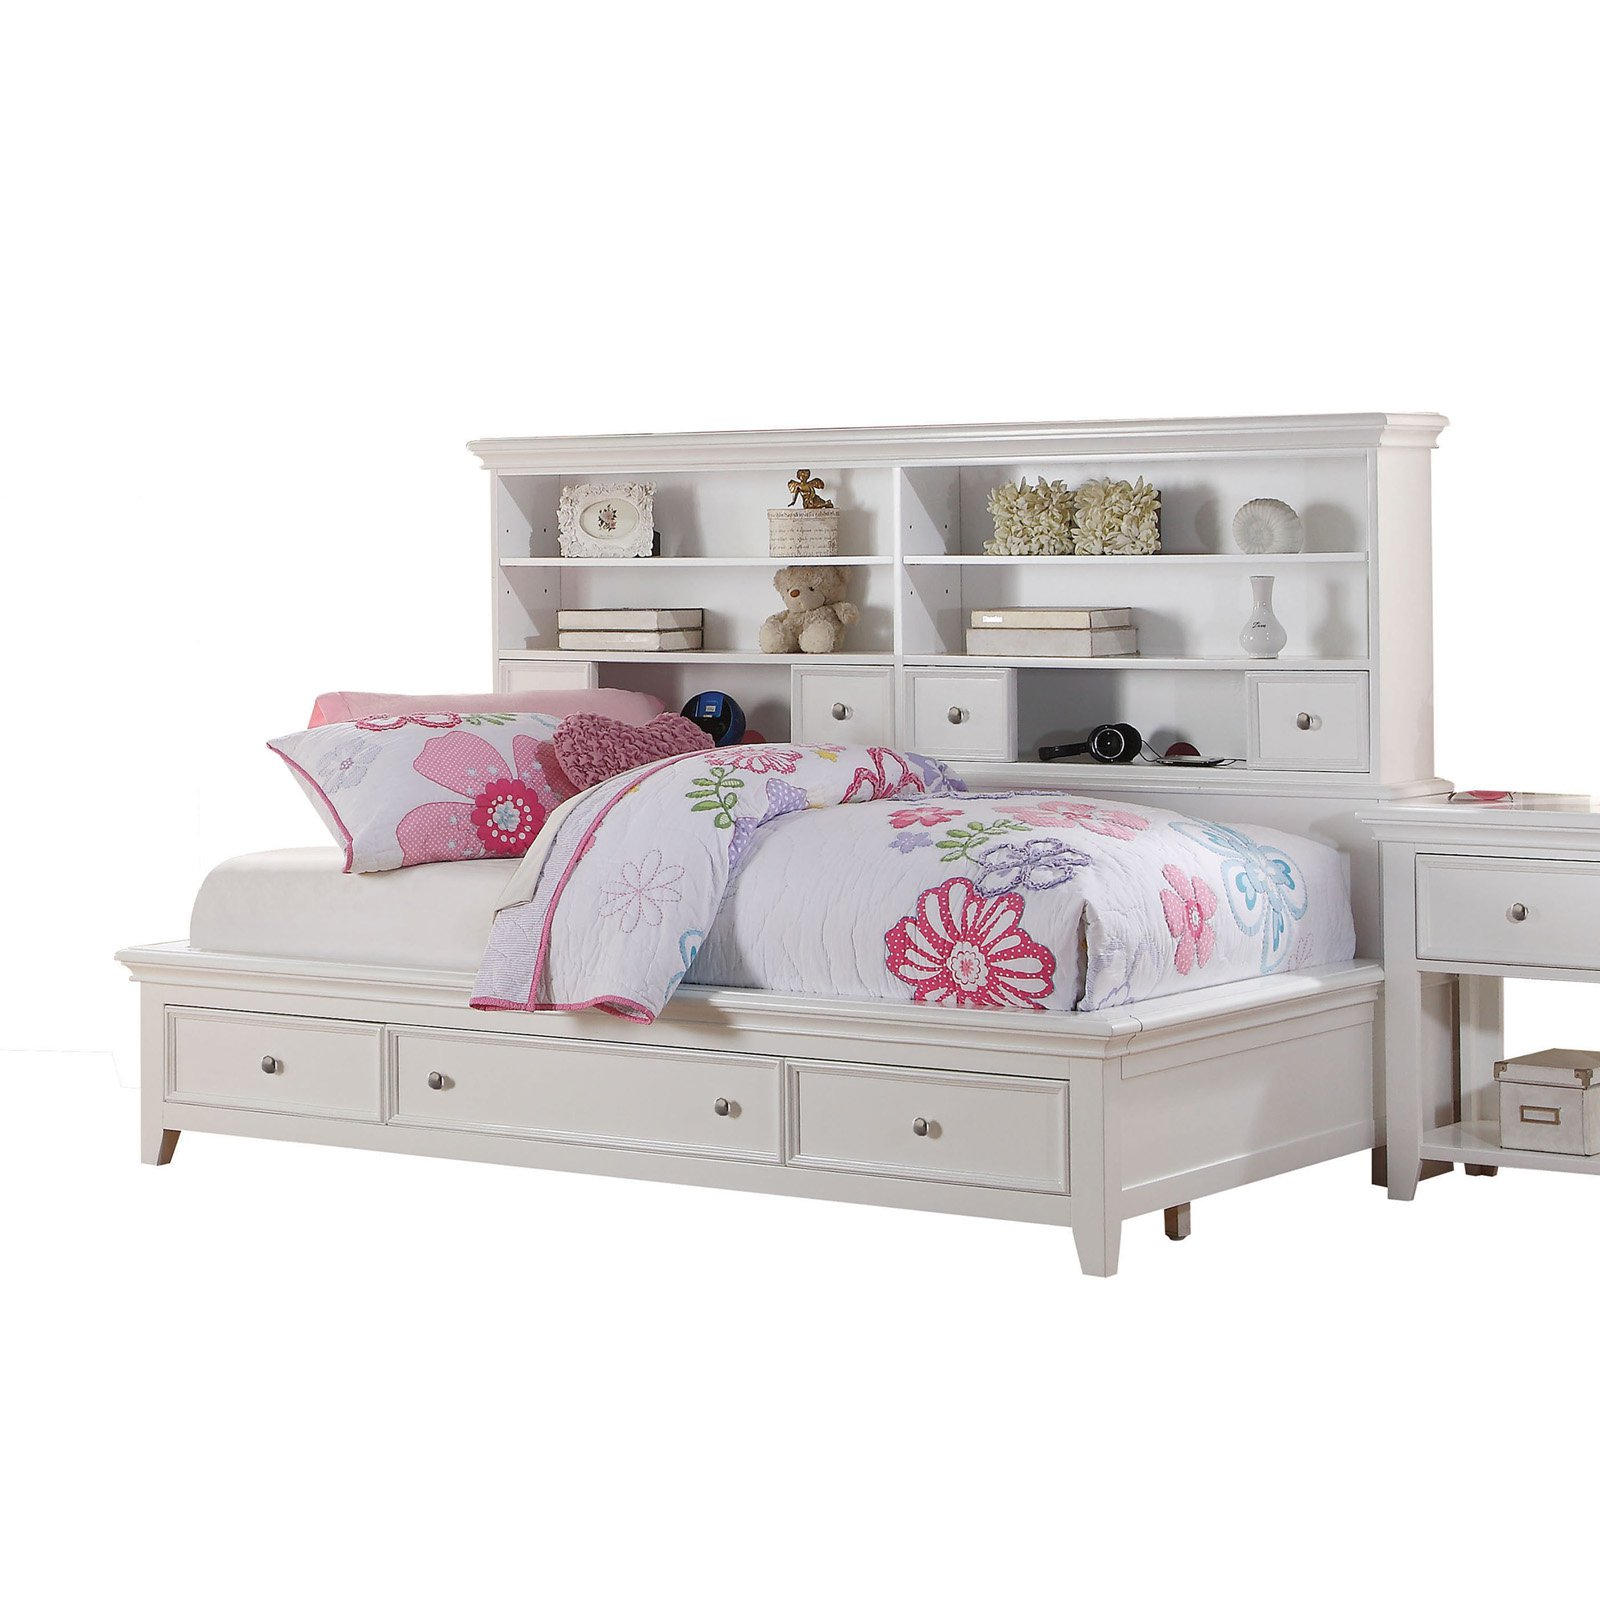 ACME Lacey Full Day Bed with Storage in White Pine Wood, Multiple Sizes by Acme Furniture